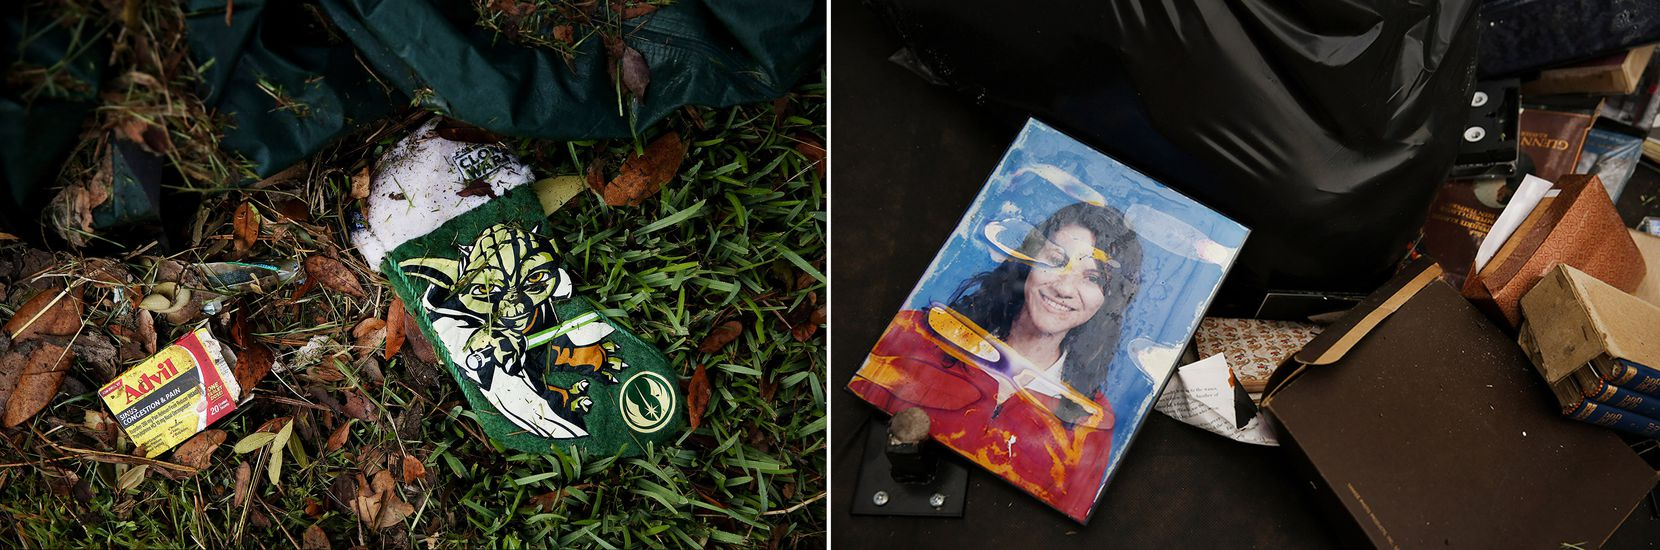 Trash left behind gives a glimpse of flood victims' lives, from Star Wars fans to students.